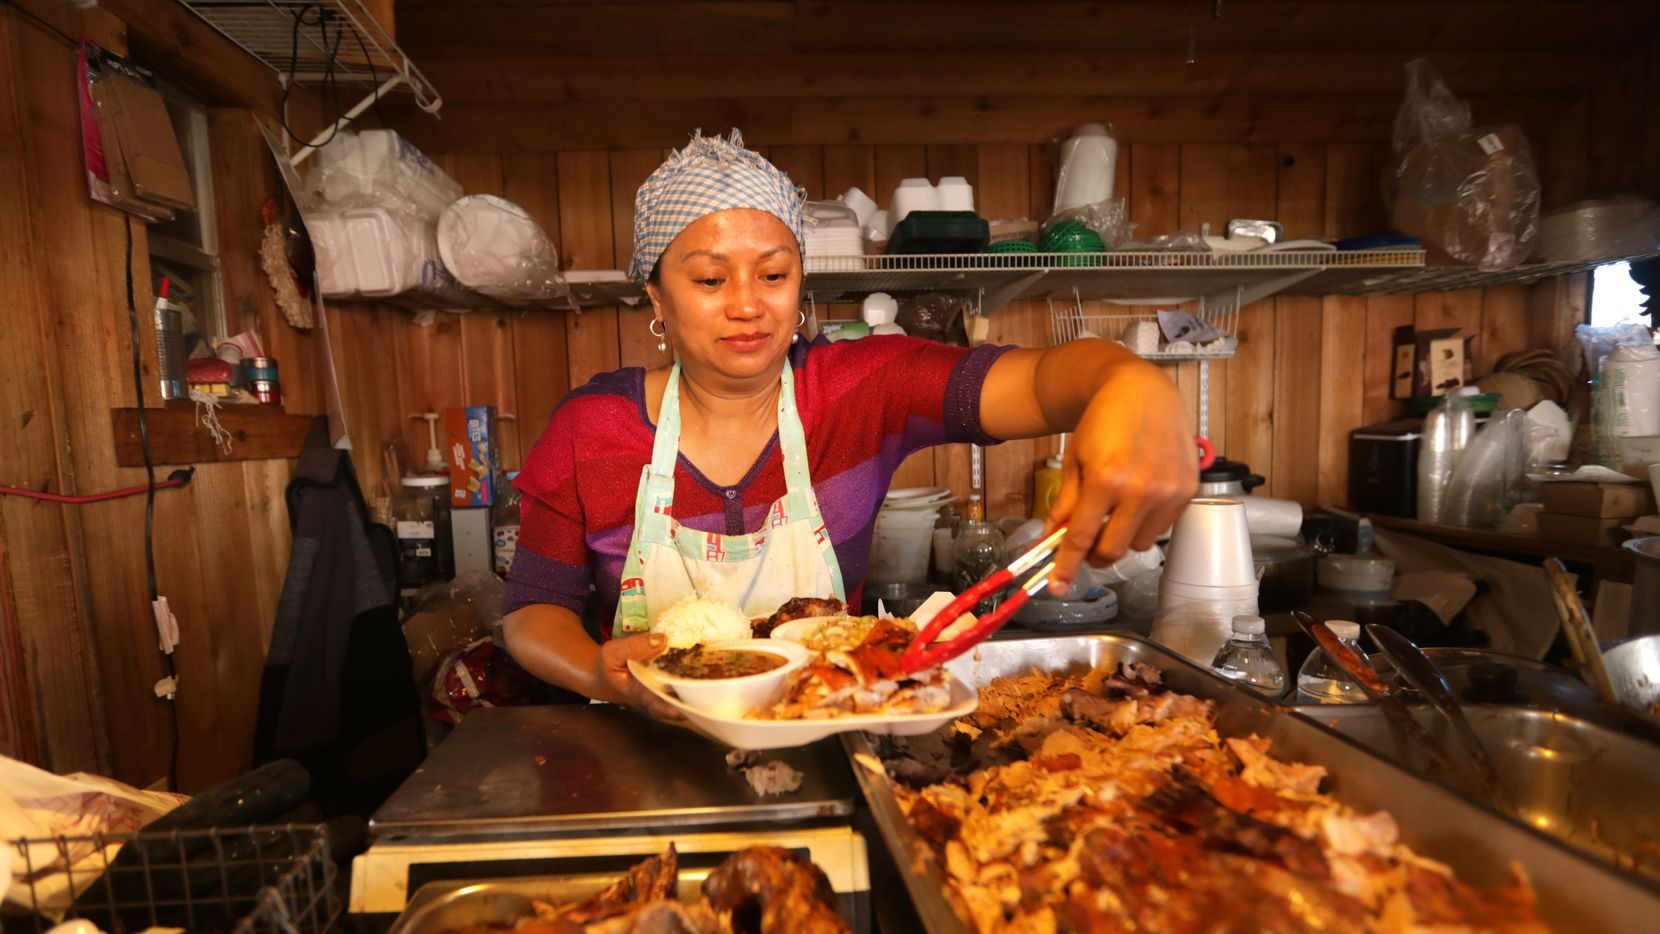 Josephine Cook prepares a plate of food at Old Rooster Creek Filipino Asian/American BBQ in Princeton, TX, on Apr. 24, 2021. (Jason Janik/Special Contributor)